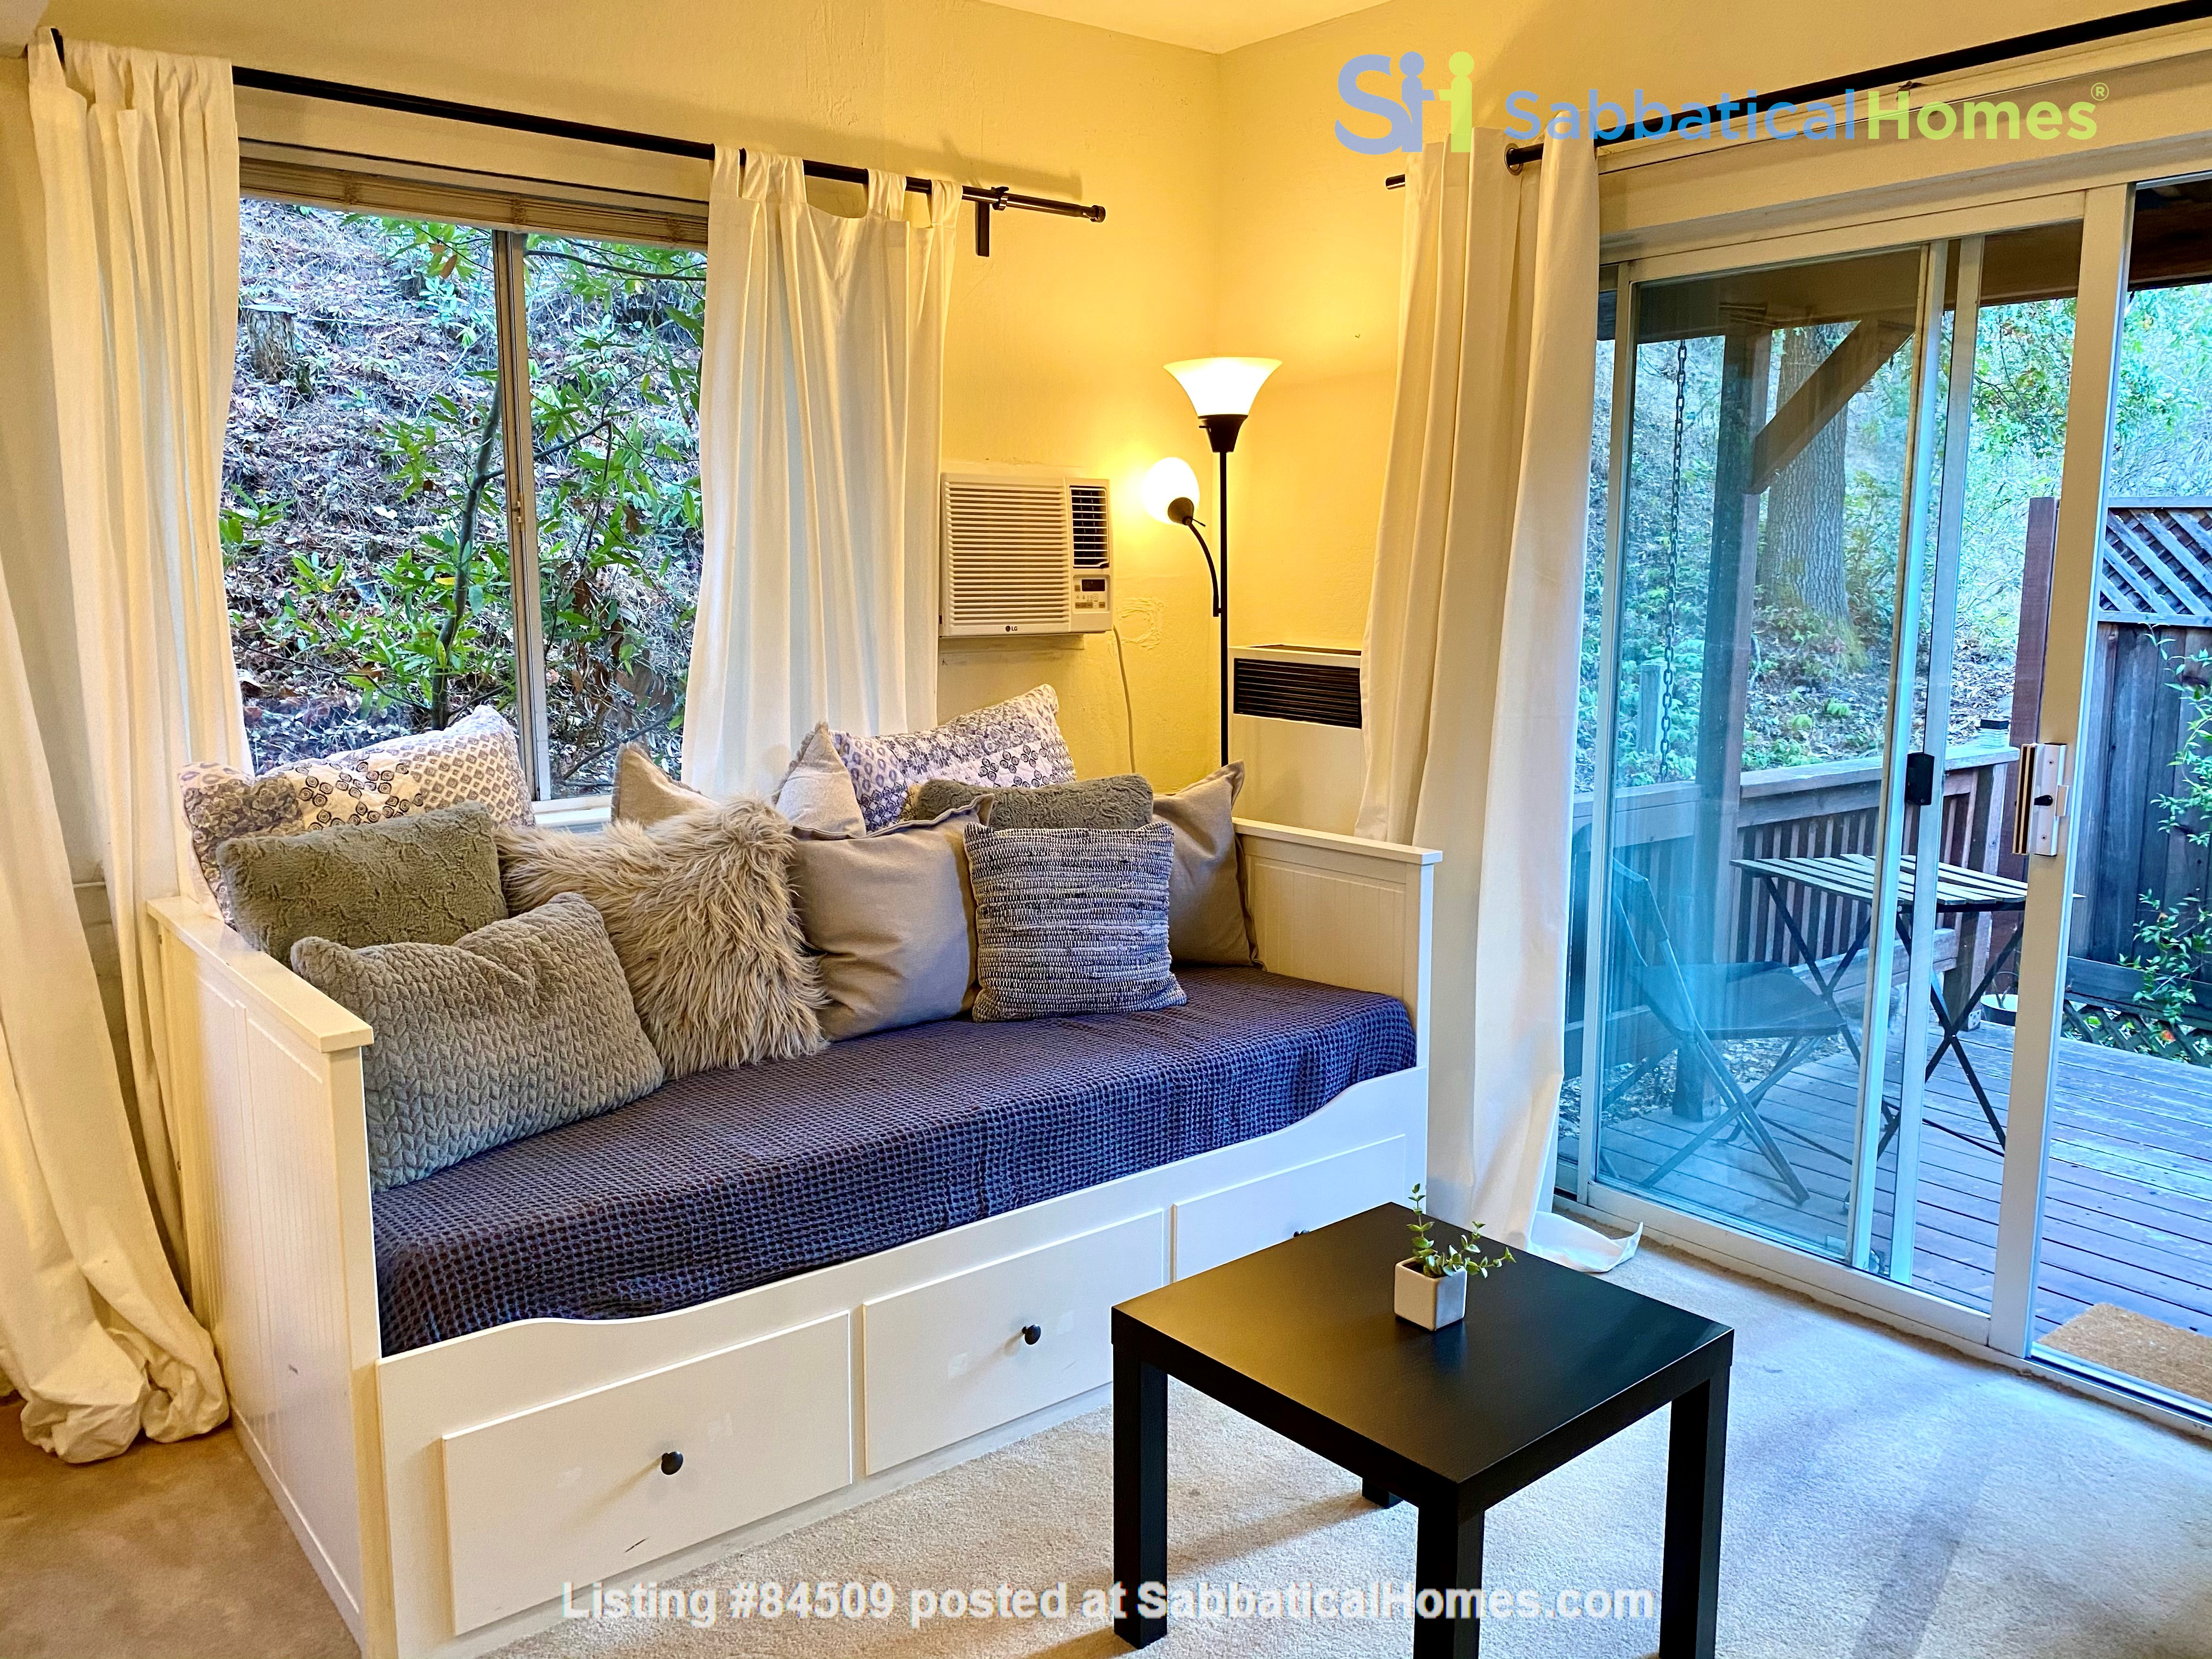 Charming, fully furnished 1BR apartment in Orinda Home Rental in Orinda, California, United States 1